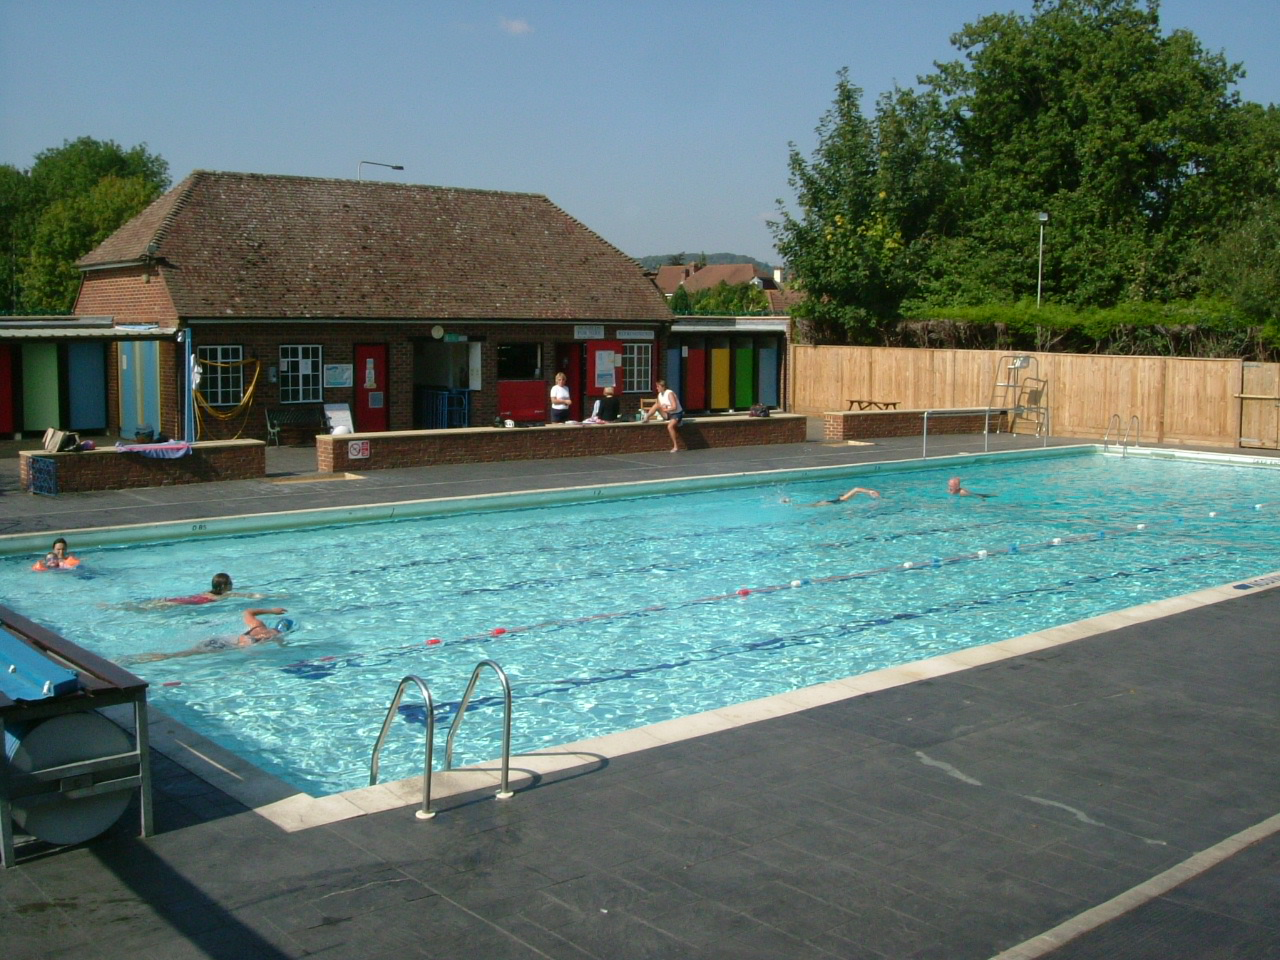 Sunshine and blue water petersfield open air swimming pool - An open air swimming pool crossword clue ...